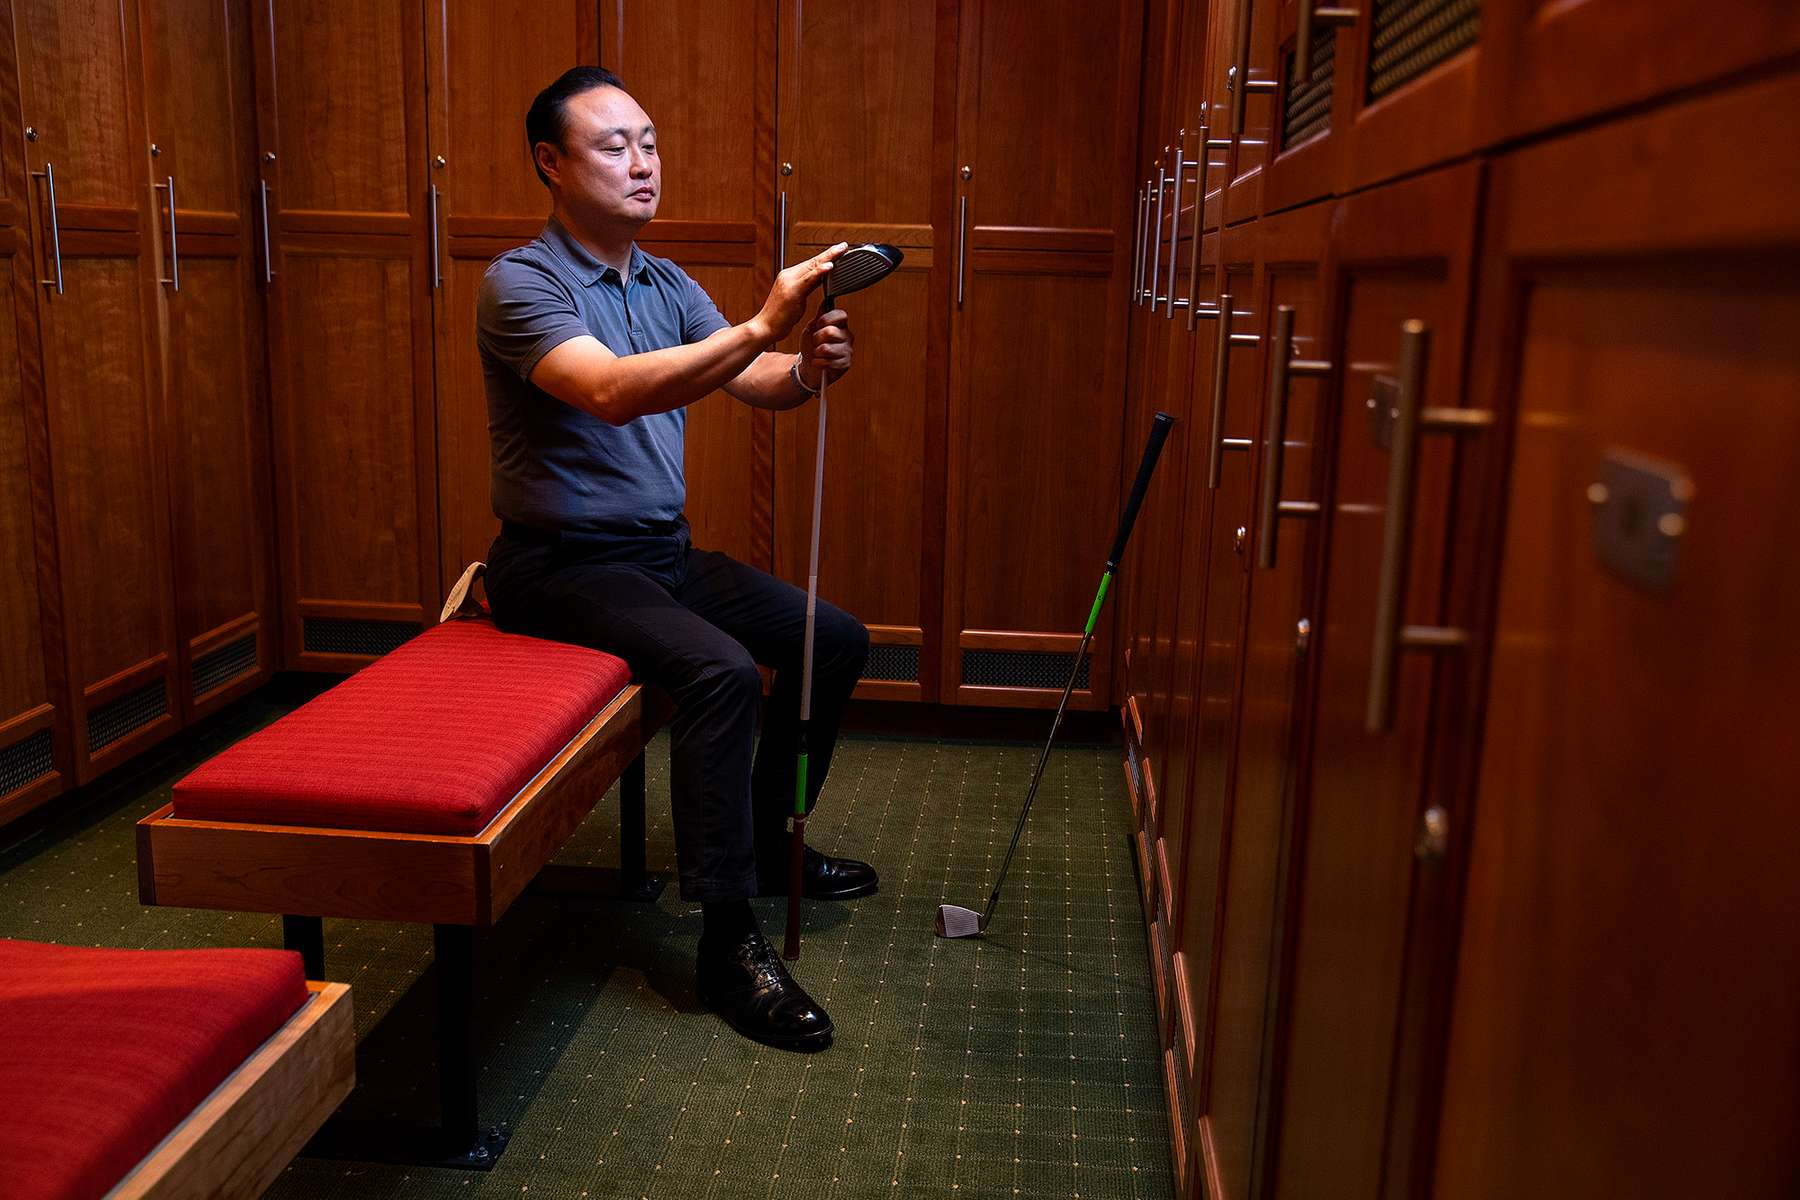 A Senior Golfer sits in the Clubhouse before a round of Golf.